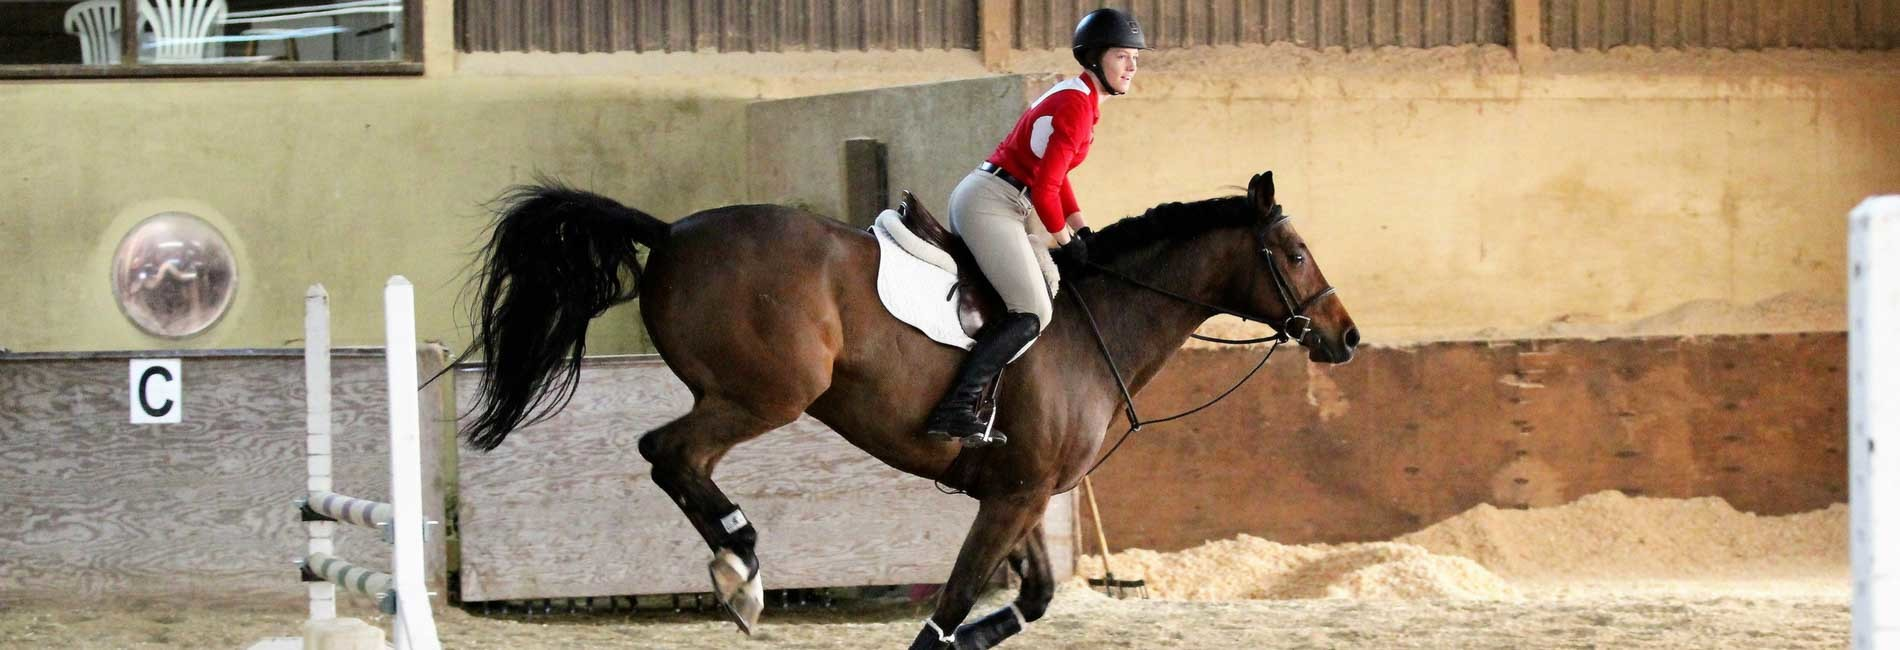 Standard swscd   equestrian  1   activity banner image  1900x650